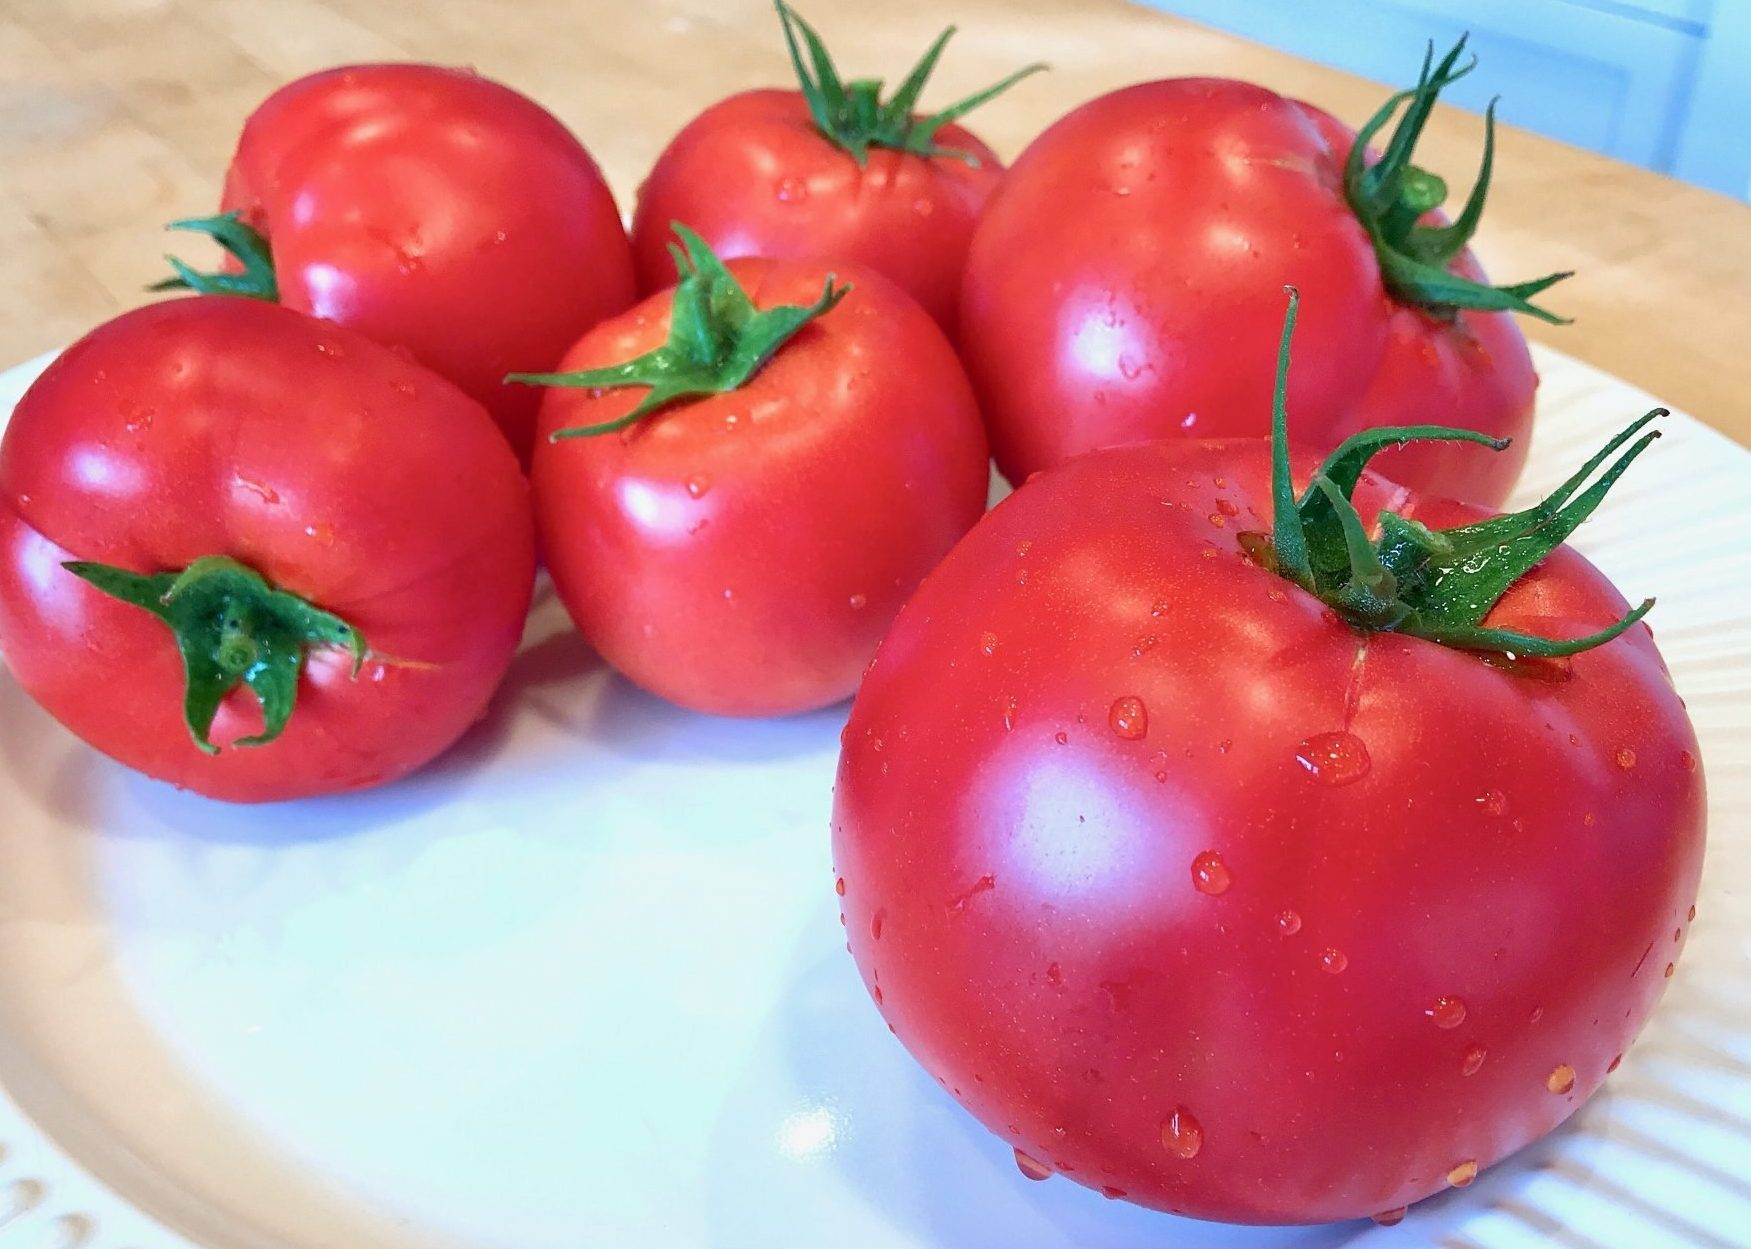 tomatoes picked fresh from the back yard vegatable garden